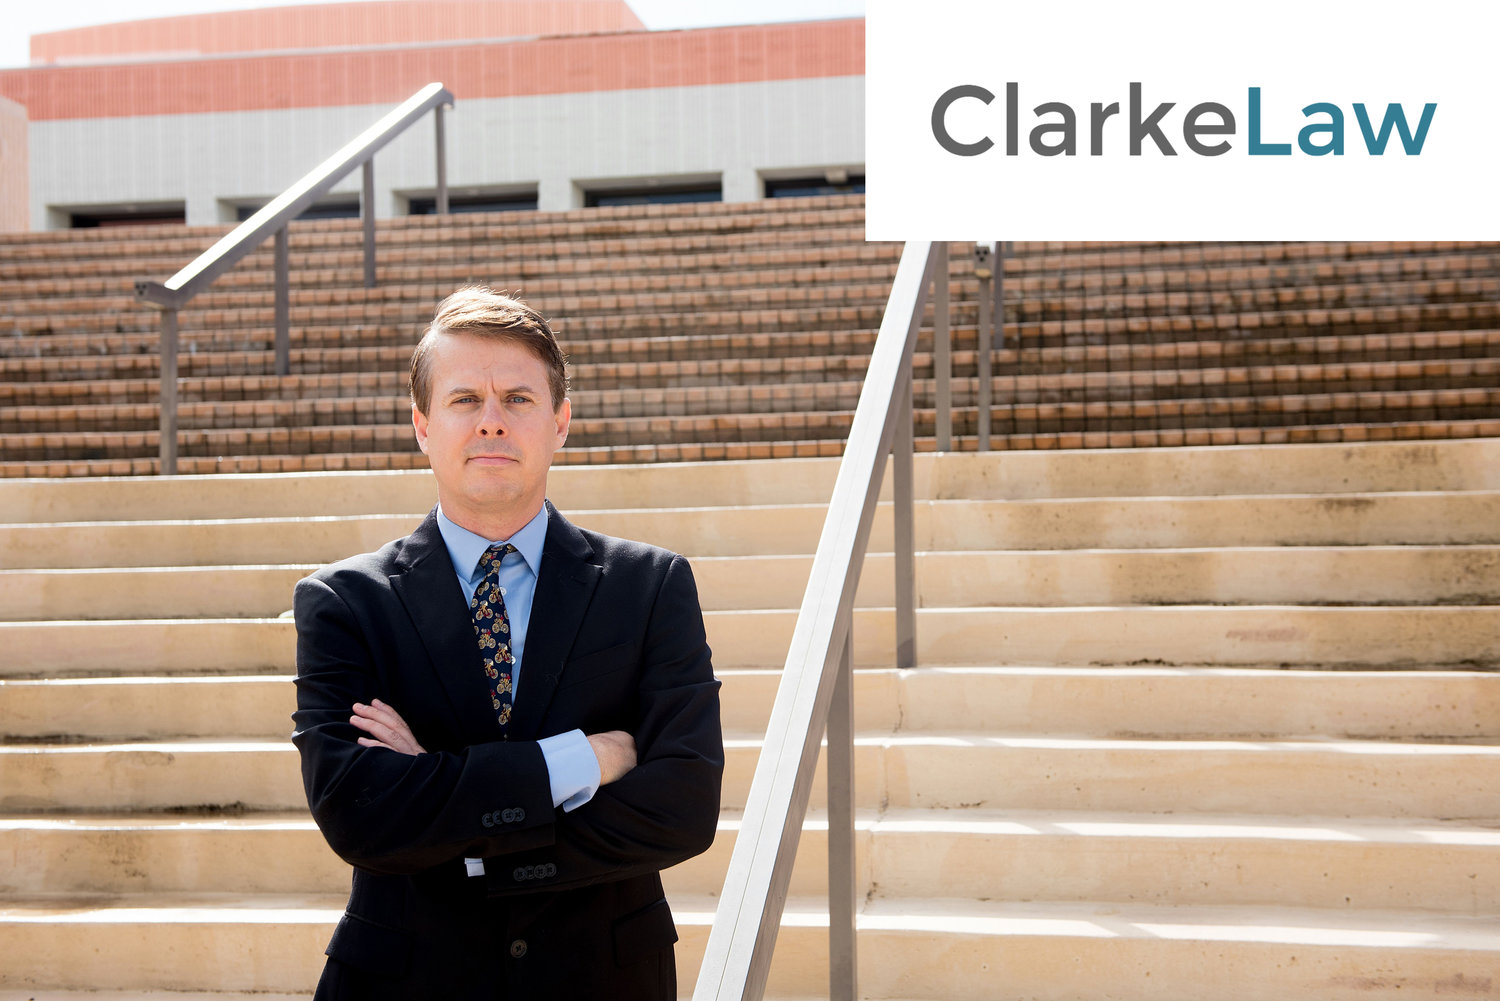 John Clarke: Fort Lauderdale Personal Injury Lawyer